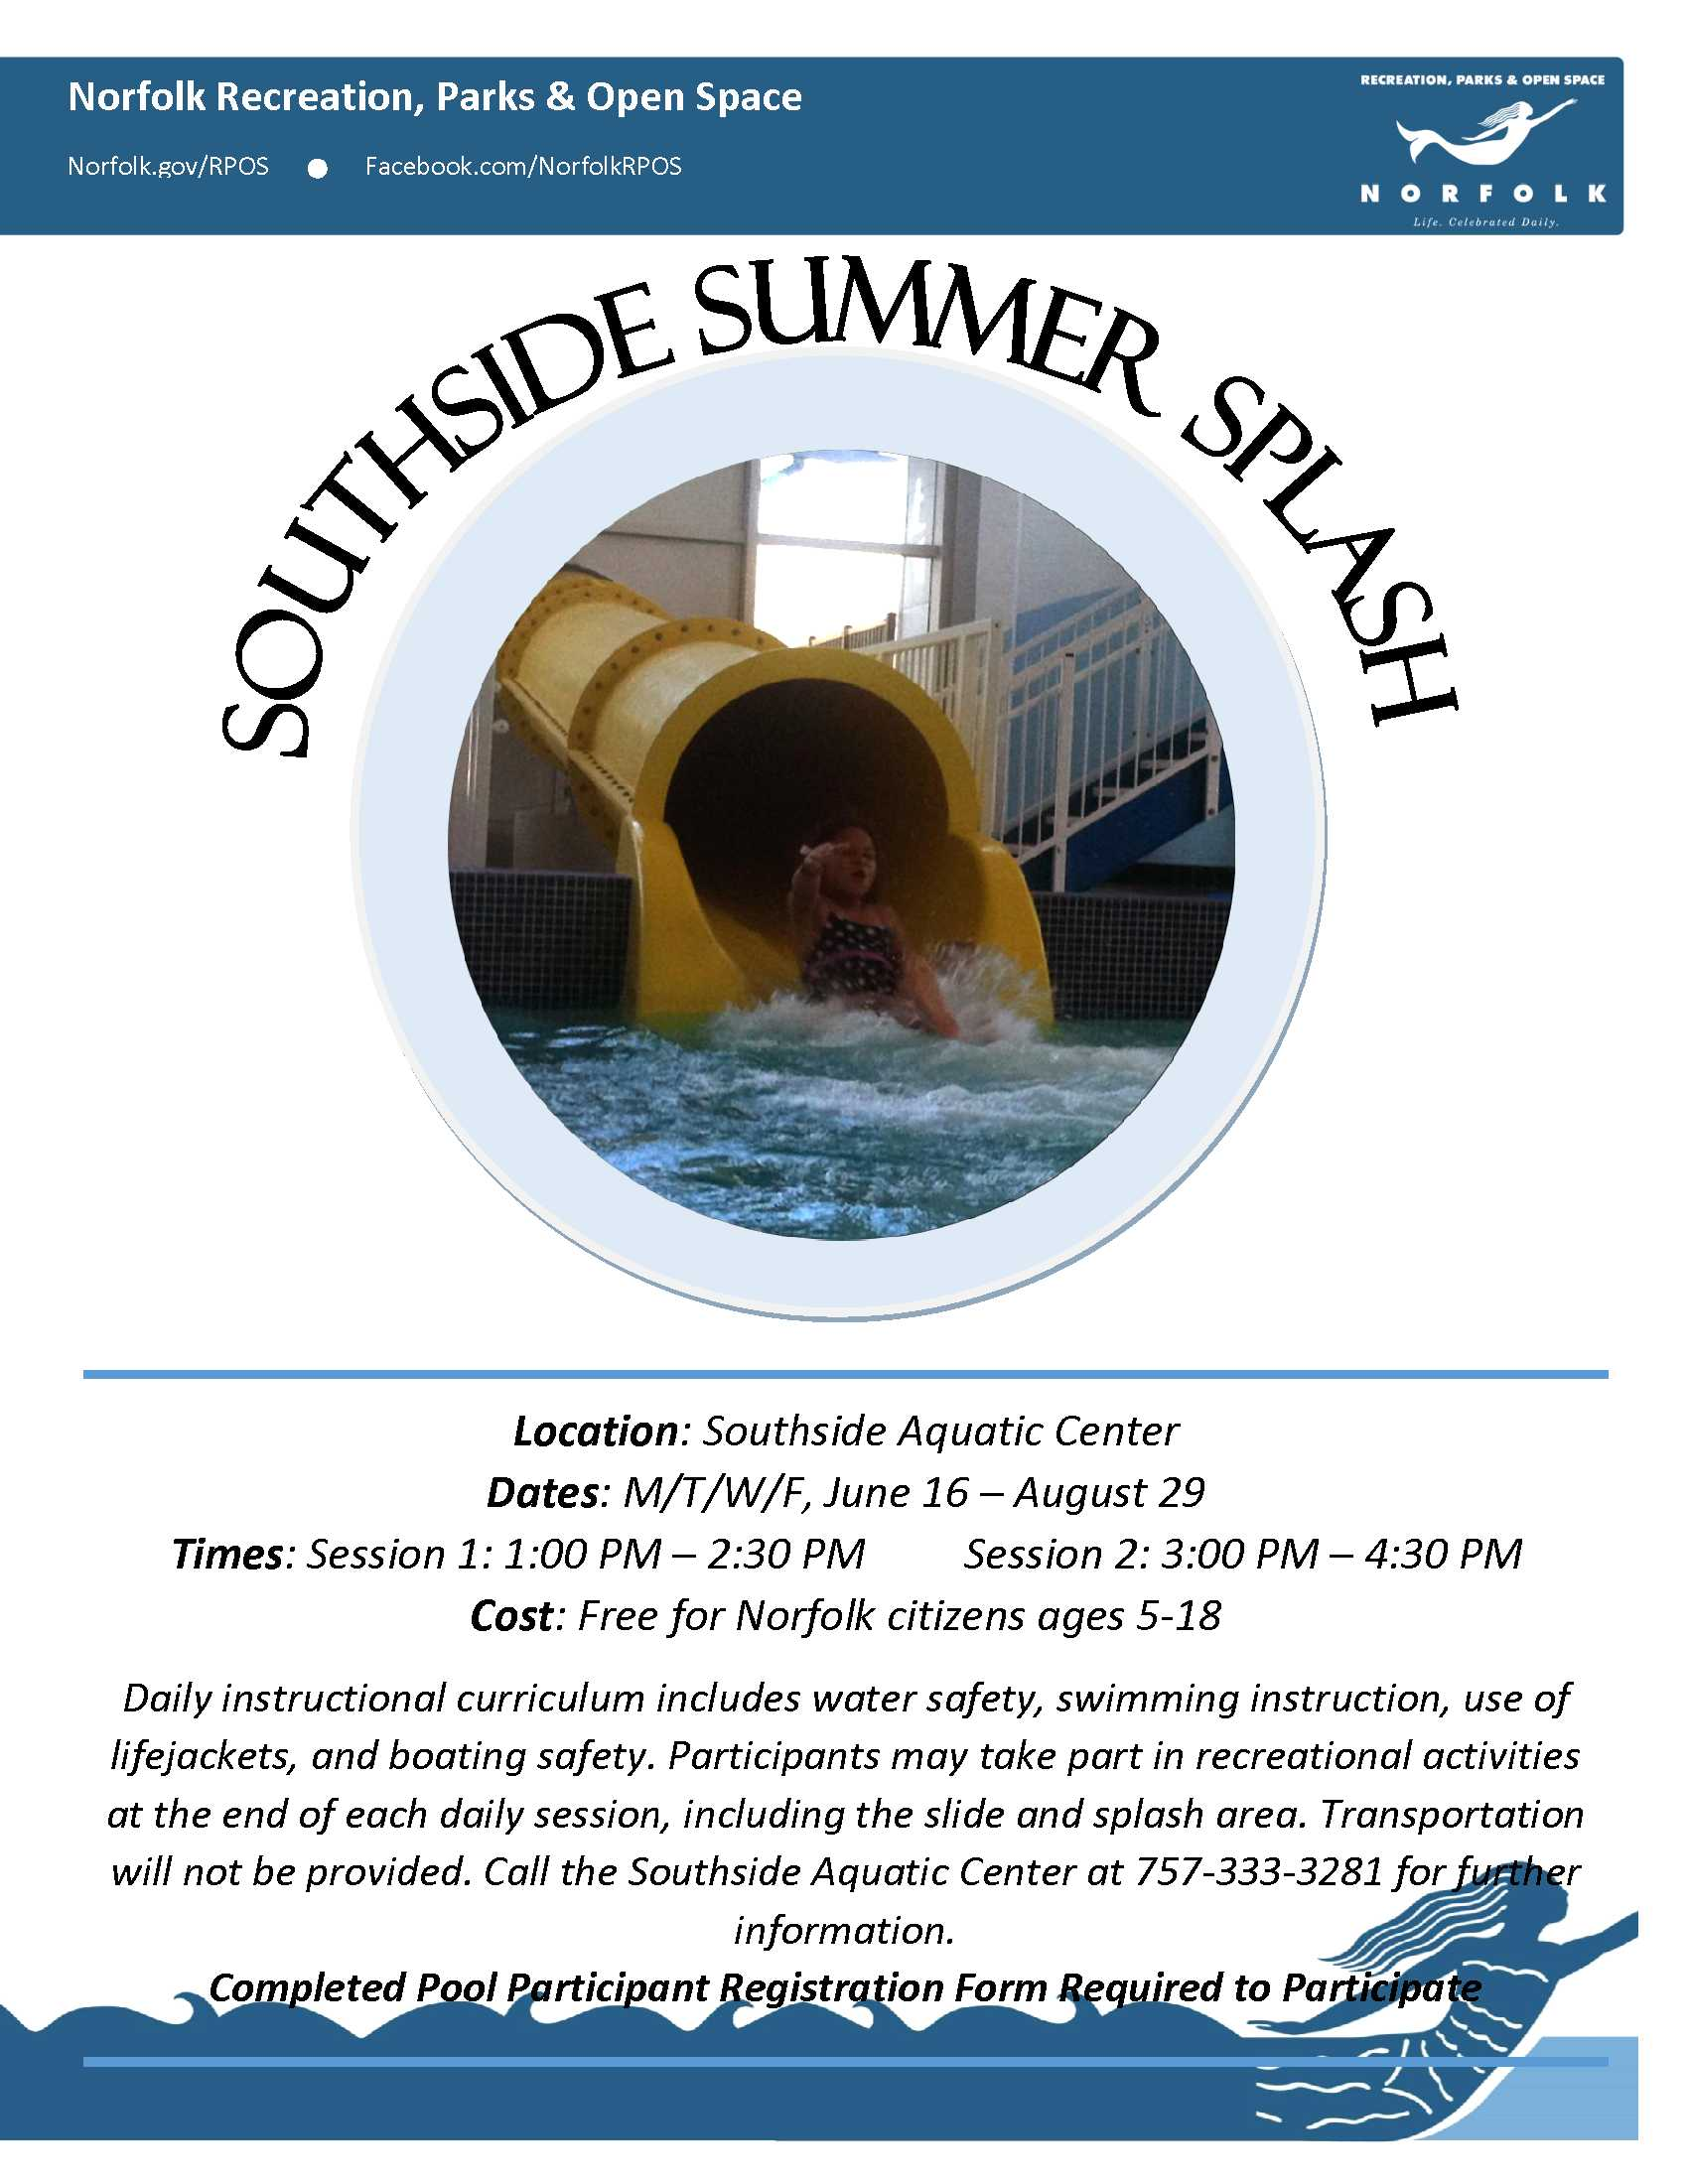 Southside Summer Splash Flyer.jpg